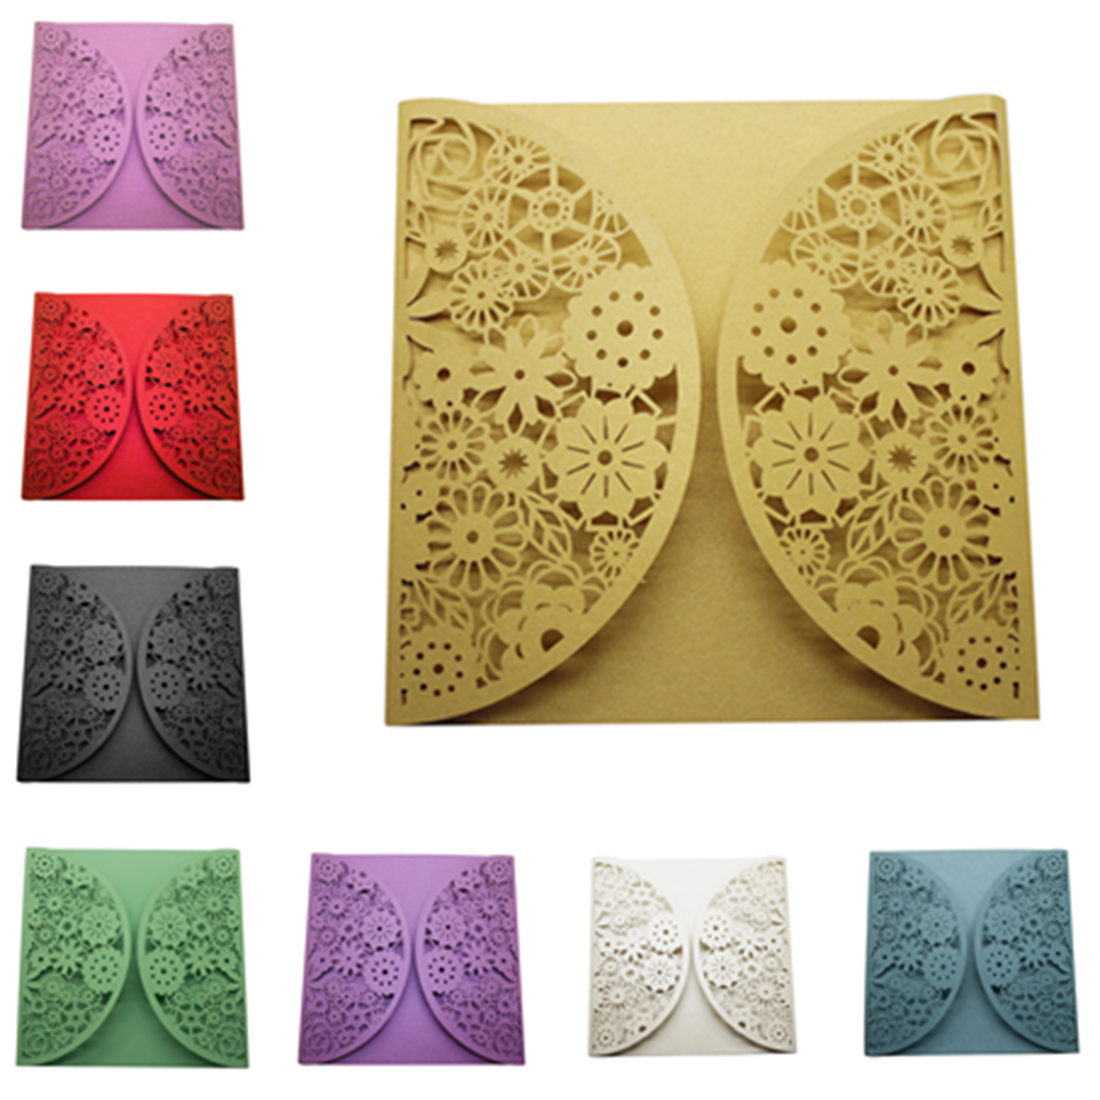 New  10Pcs Delicate Carved Pattern Romantic Wedding Party Invitation Card For Wedding Business Party Birthday 1 design laser cut white elegant pattern west cowboy style vintage wedding invitations card kit blank paper printing invitation